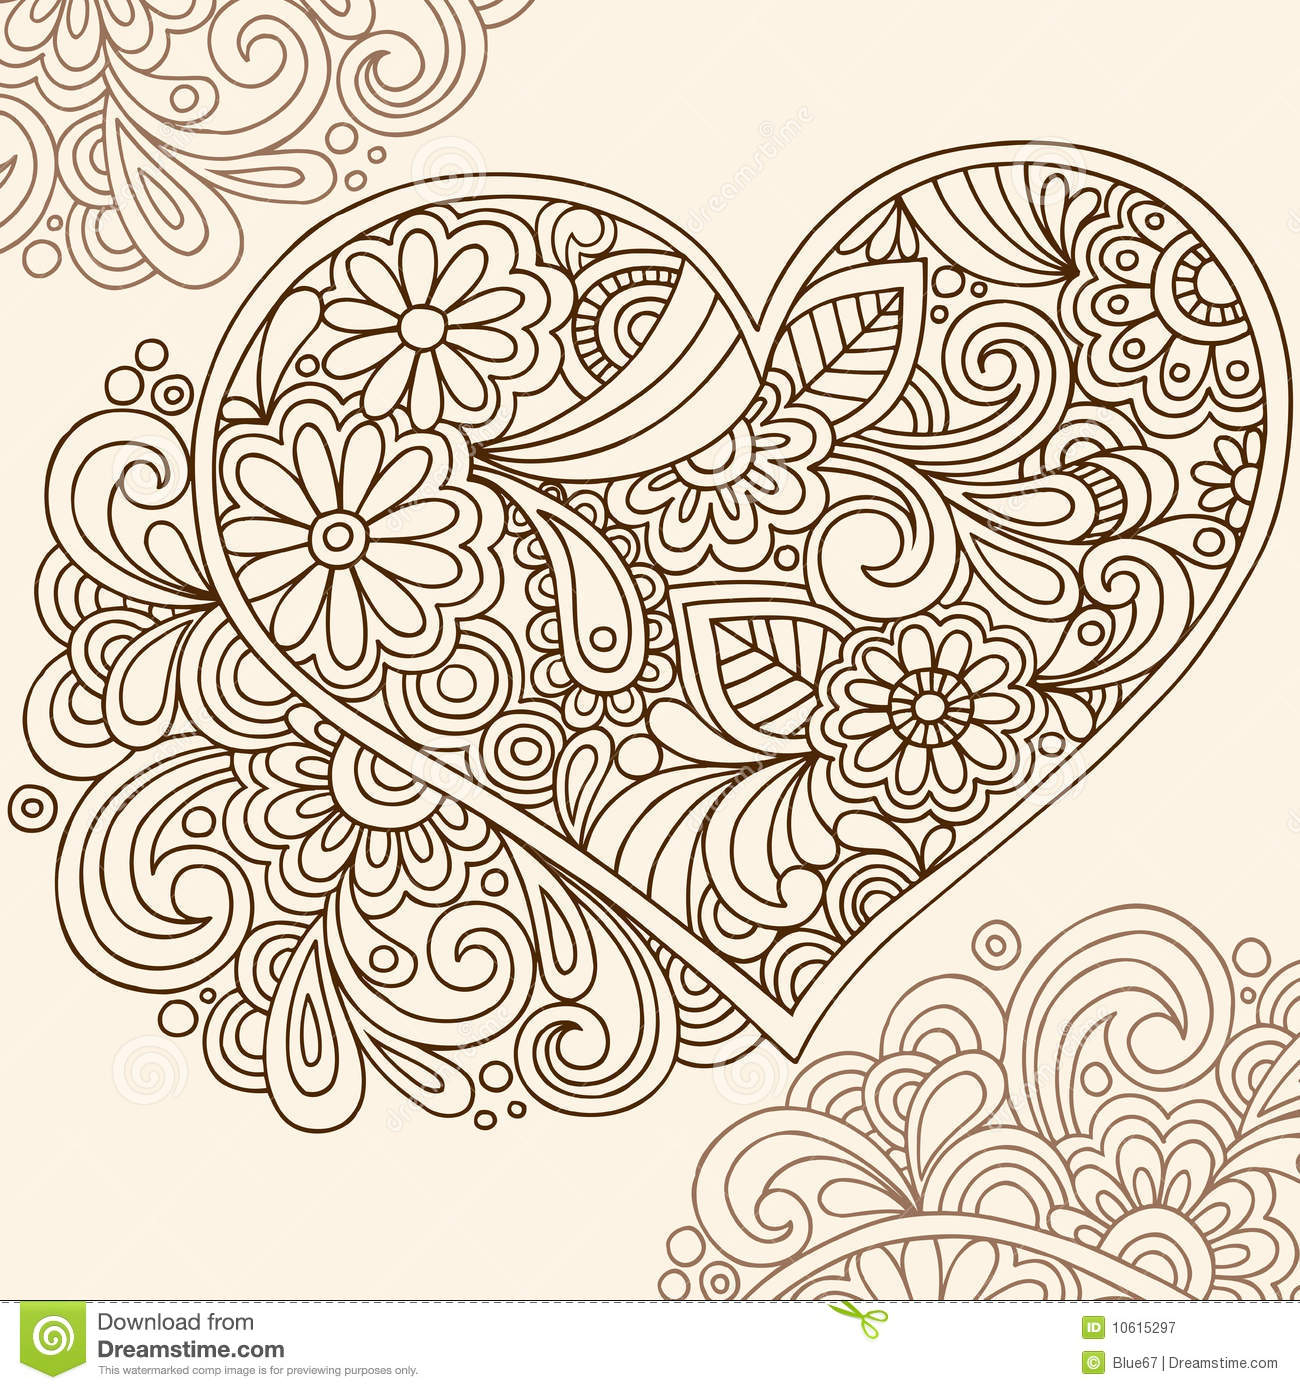 Hand drawn Doodle Henna Heart Vector Illustration With Flowers And